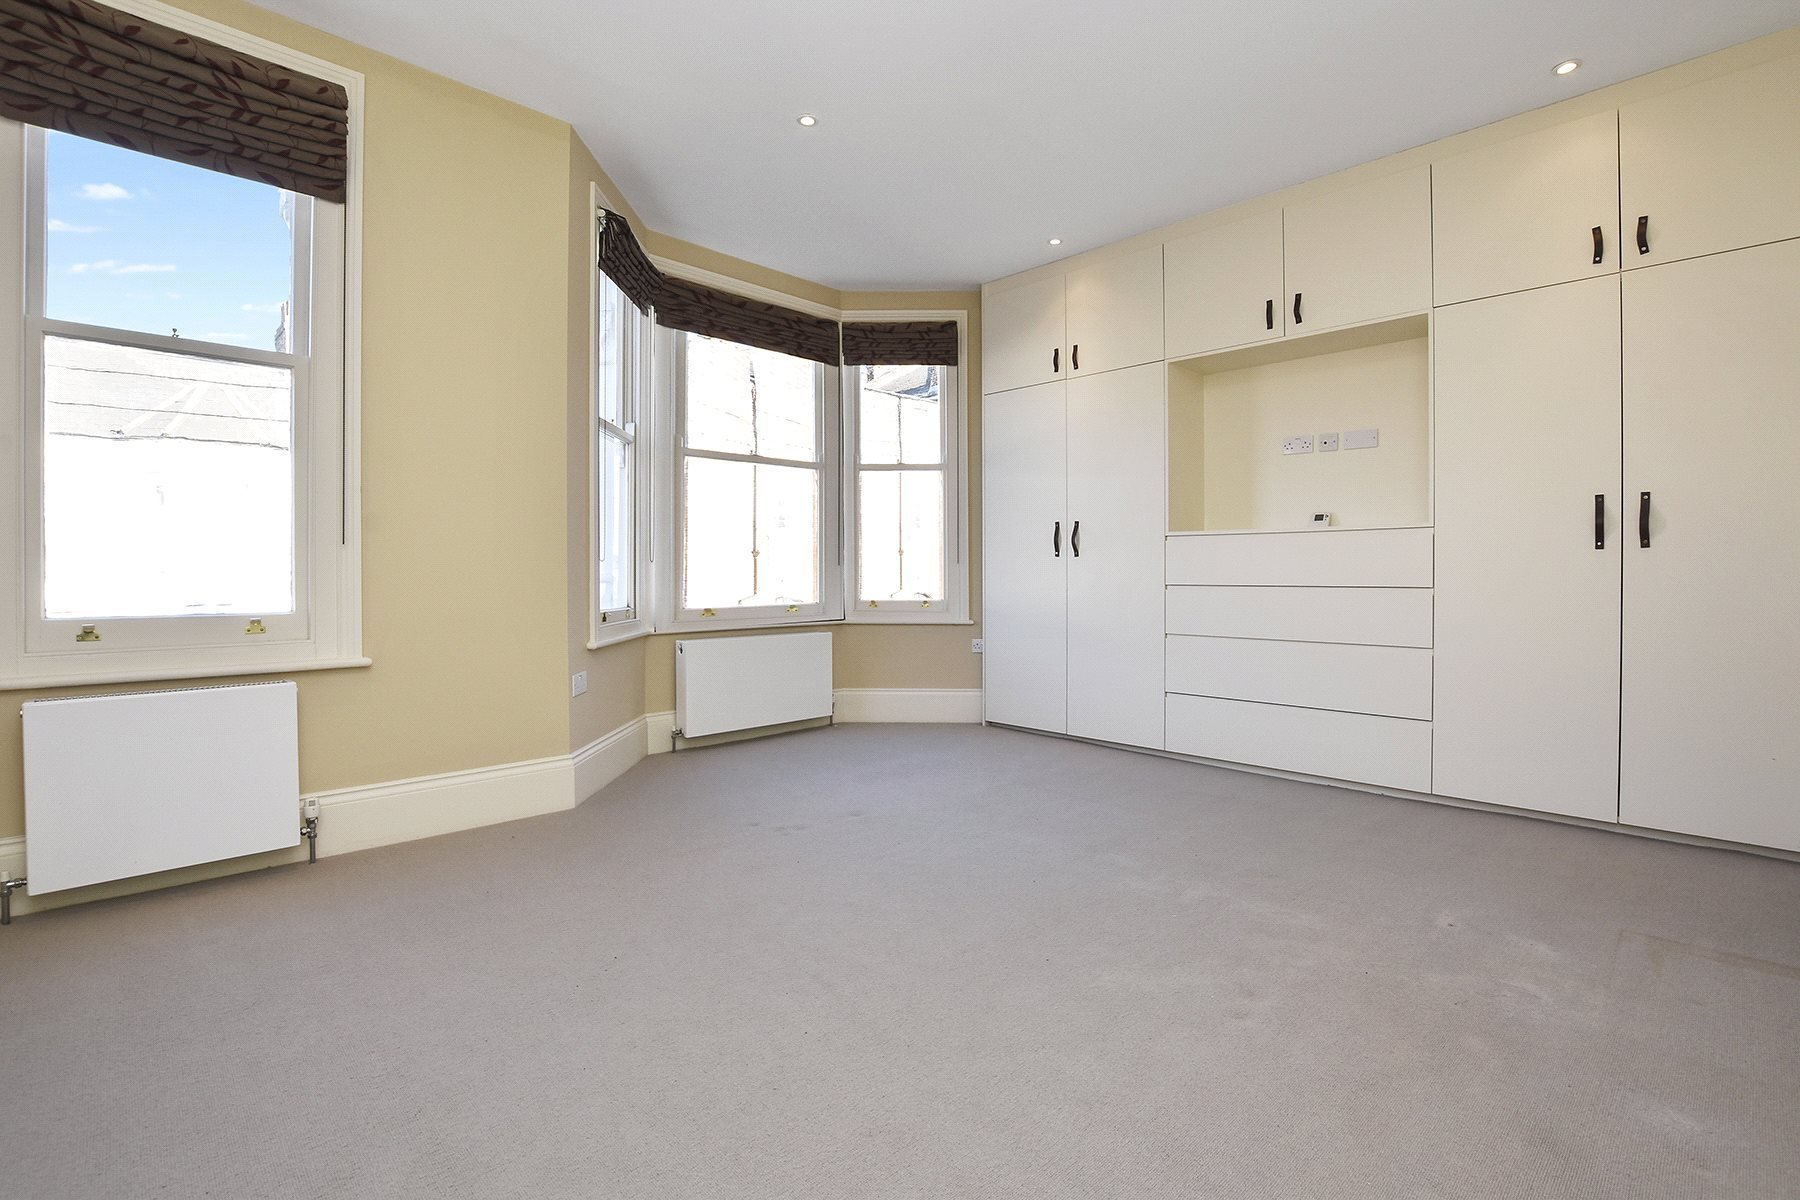 Best 5 Bedroom House To Rent In Bolton Gardens London Nw10 Ksl170094 Greene Co With Pictures